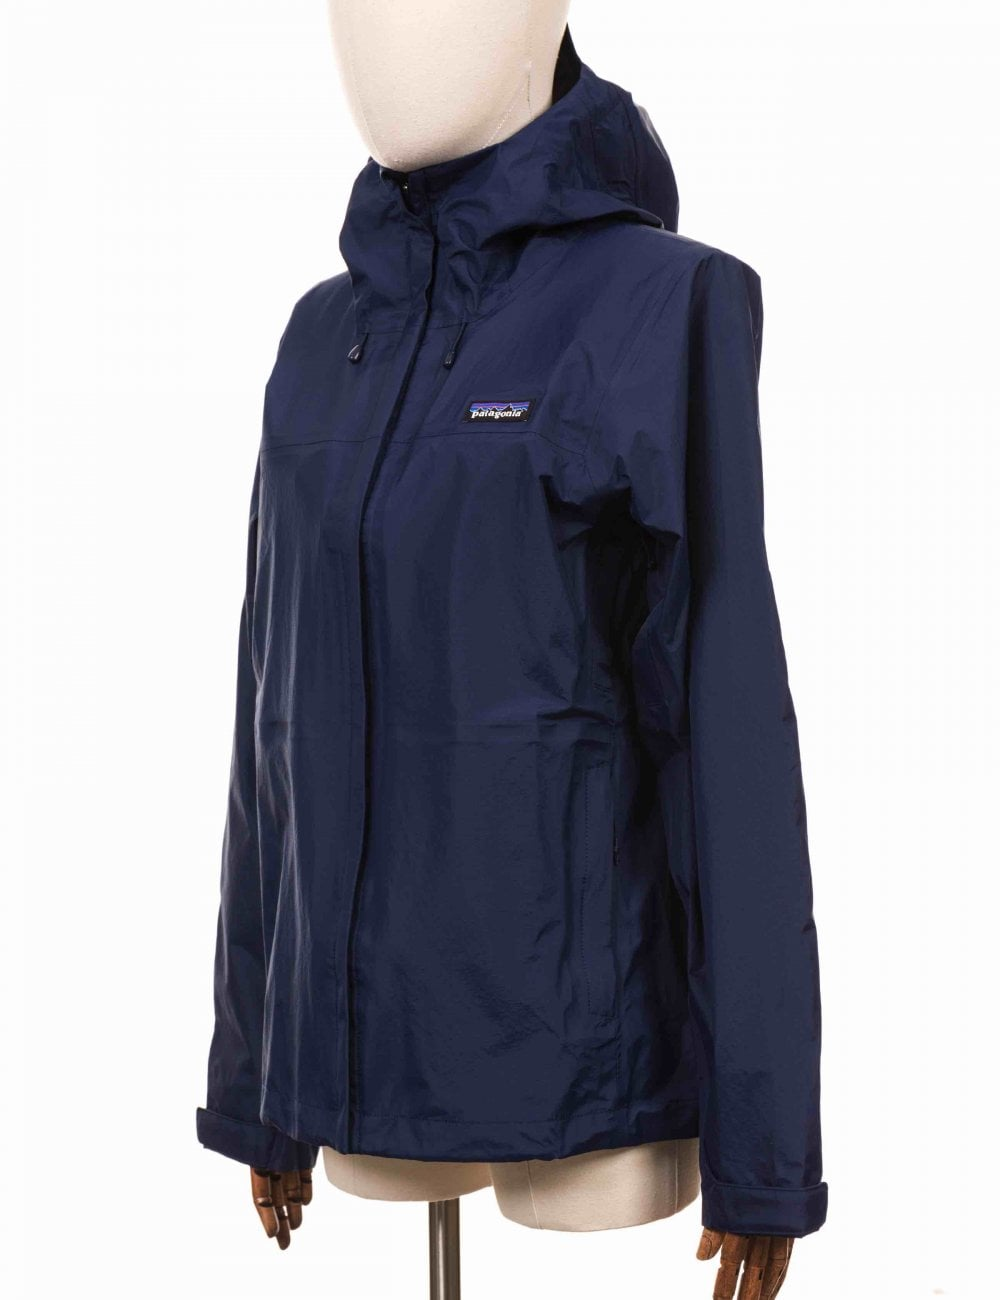 Women's Torrentshell 3L Jacket Classic Navy